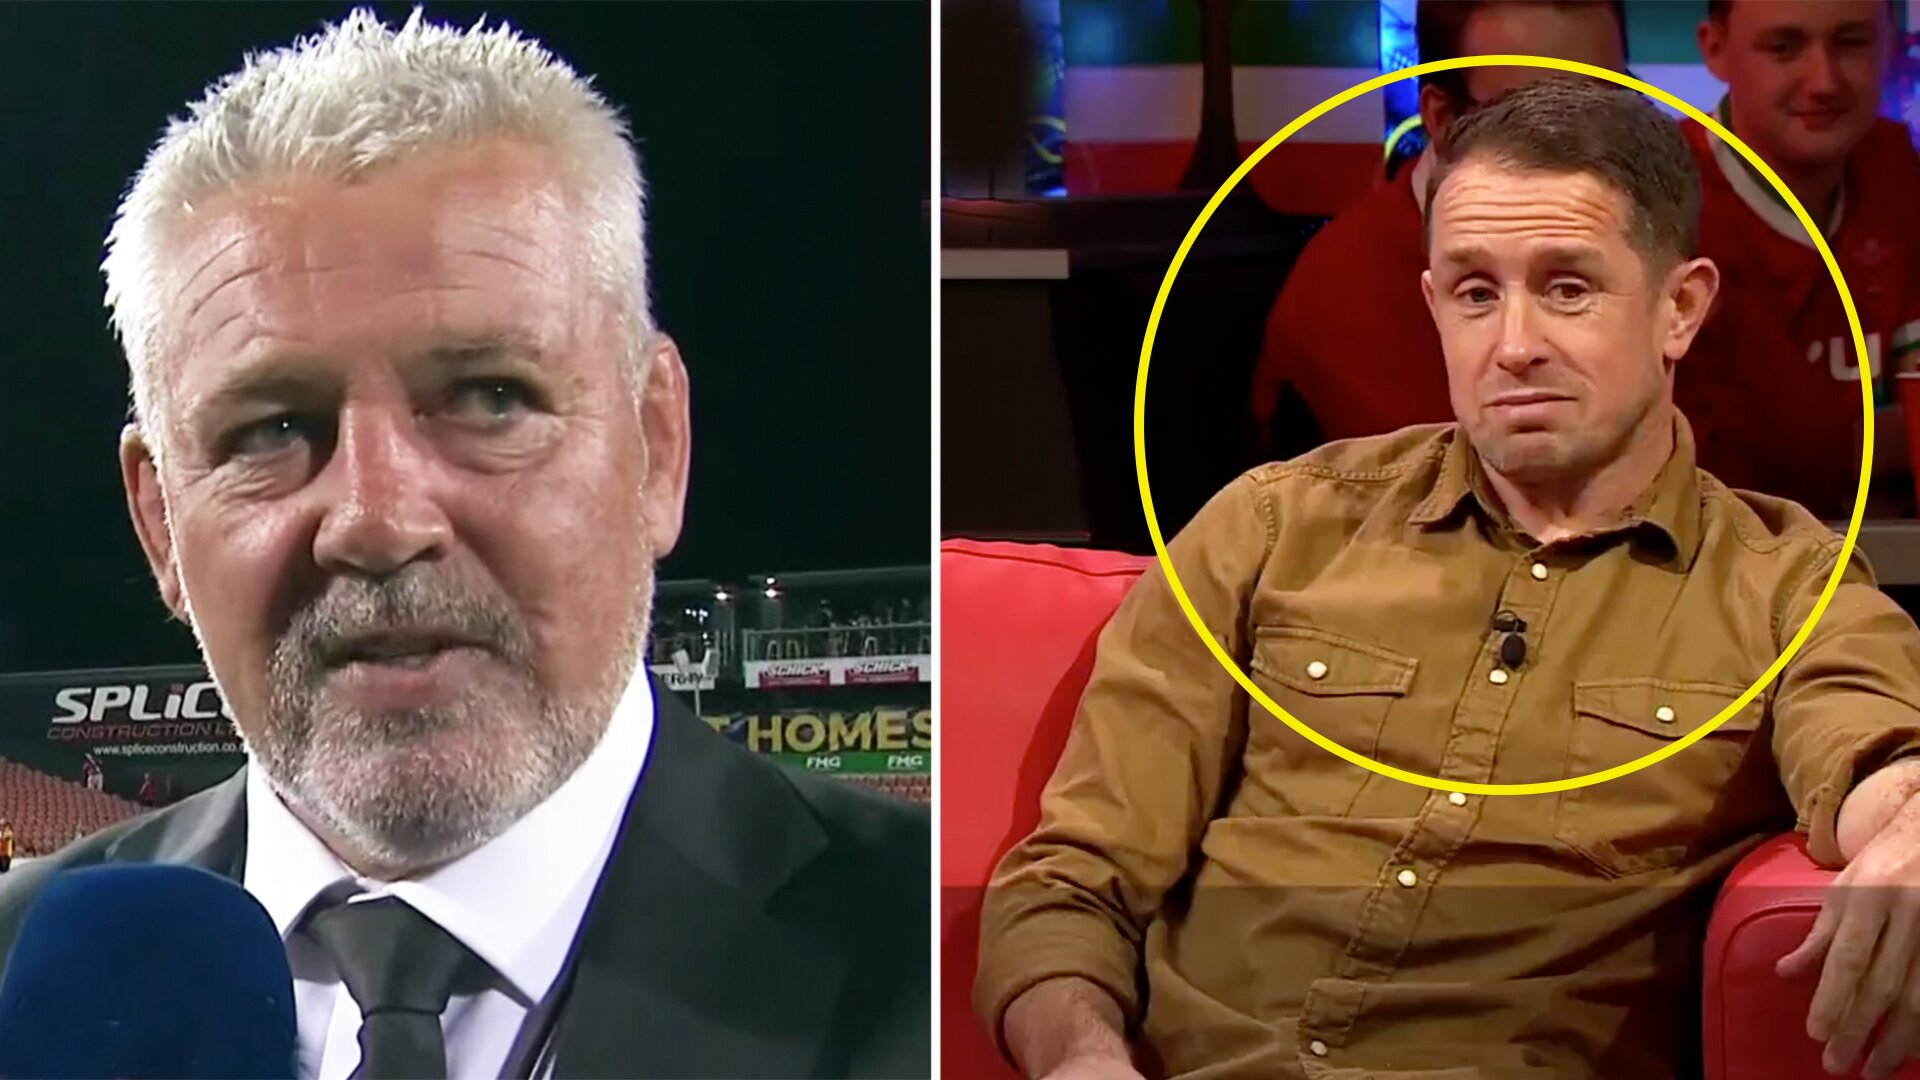 Fans shock after Shane Williams details story of physical confrontation with Warren Gatland at Twickenham in 2008